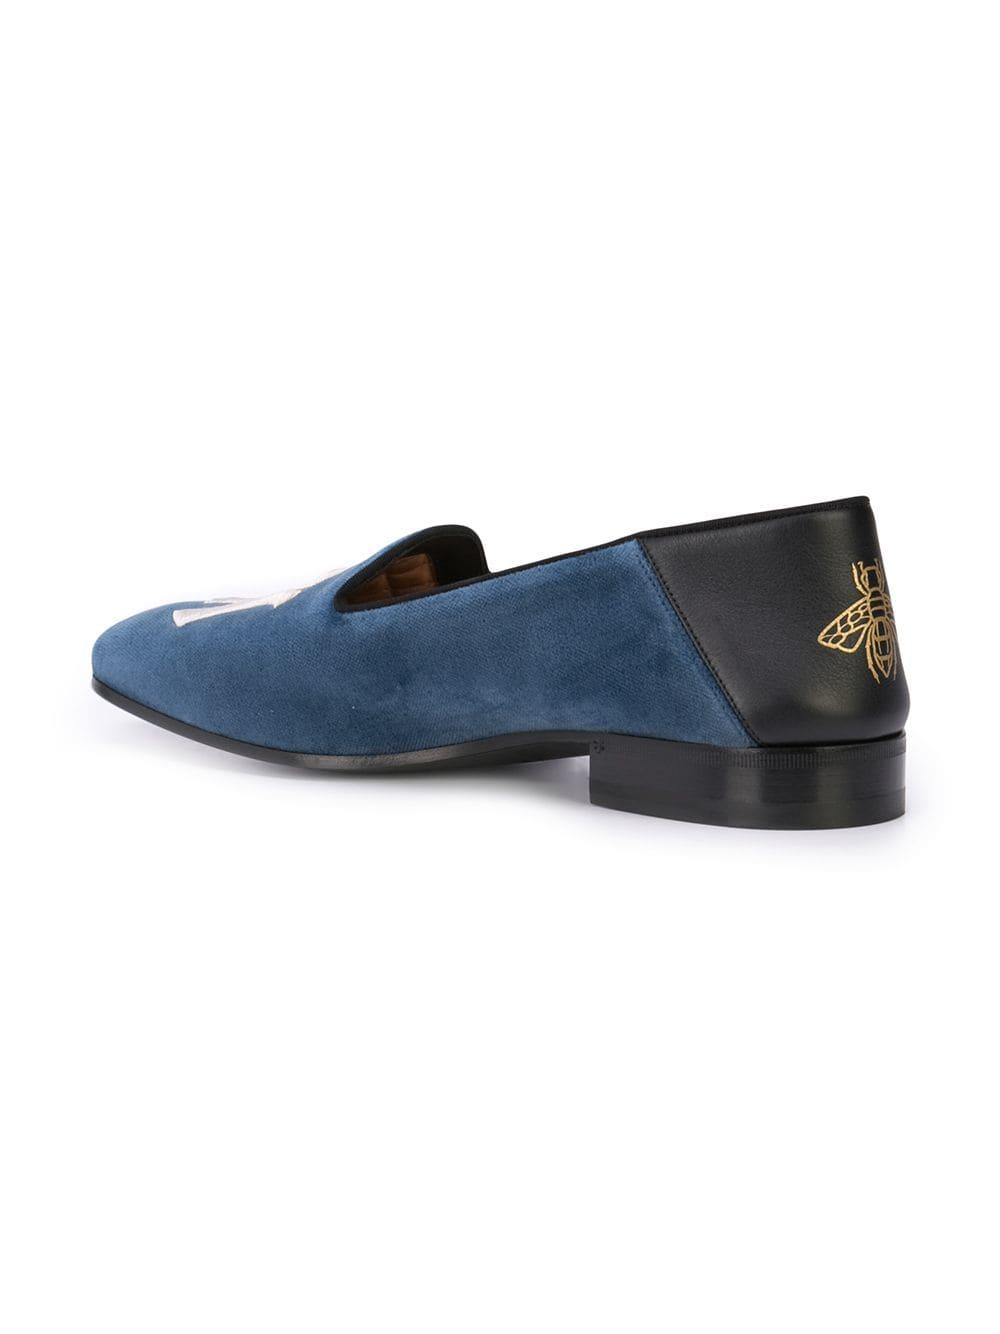 dd908e3e3e985 Gucci - Blue Fold-down Velvet Loafers With Ny Yankeestm Patch for Men -  Lyst. View fullscreen